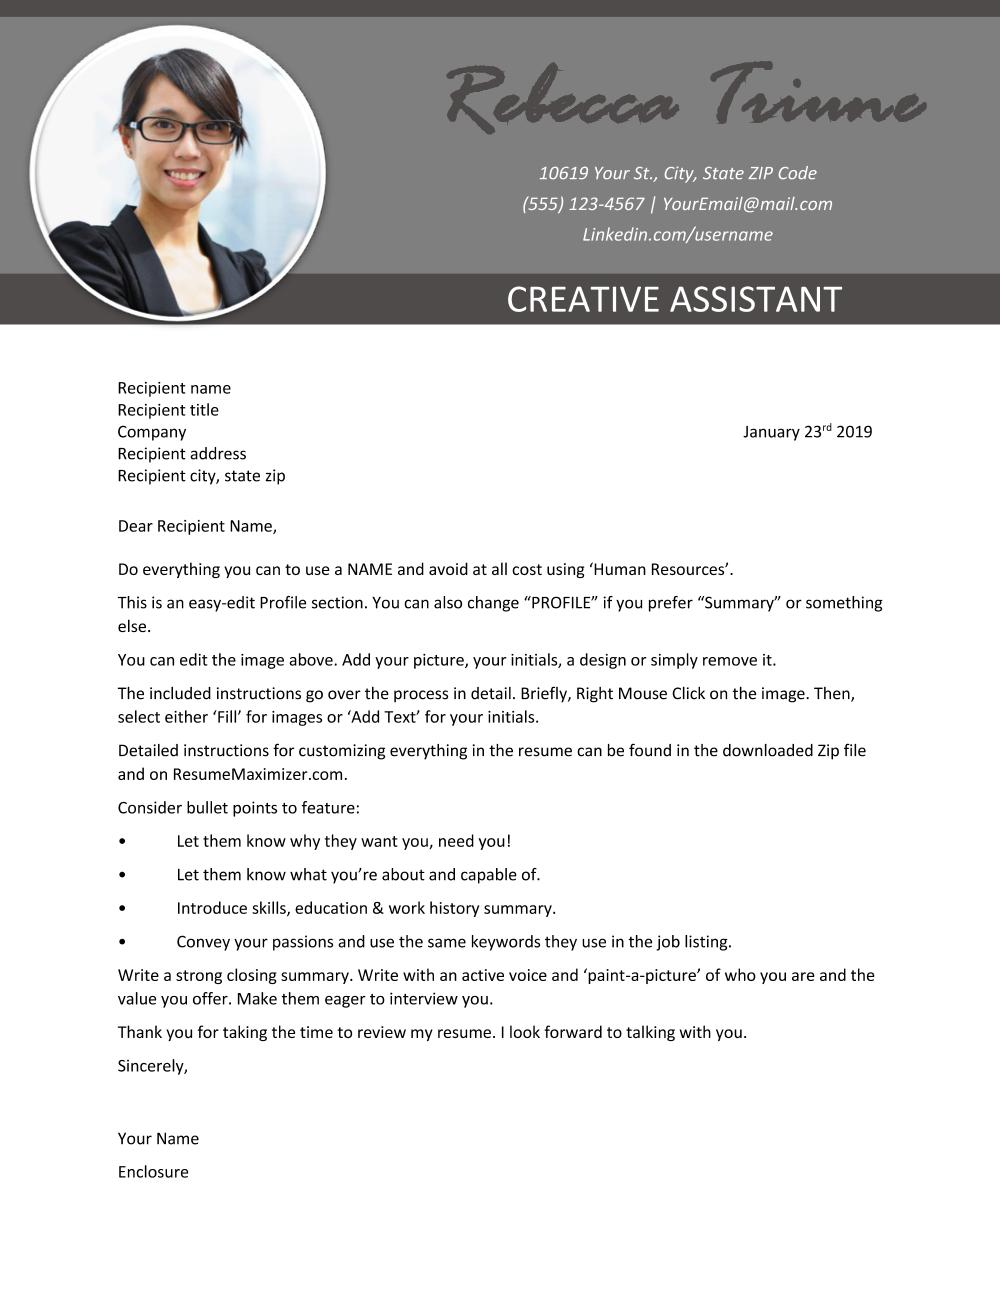 Leading Edge - Cover Letter